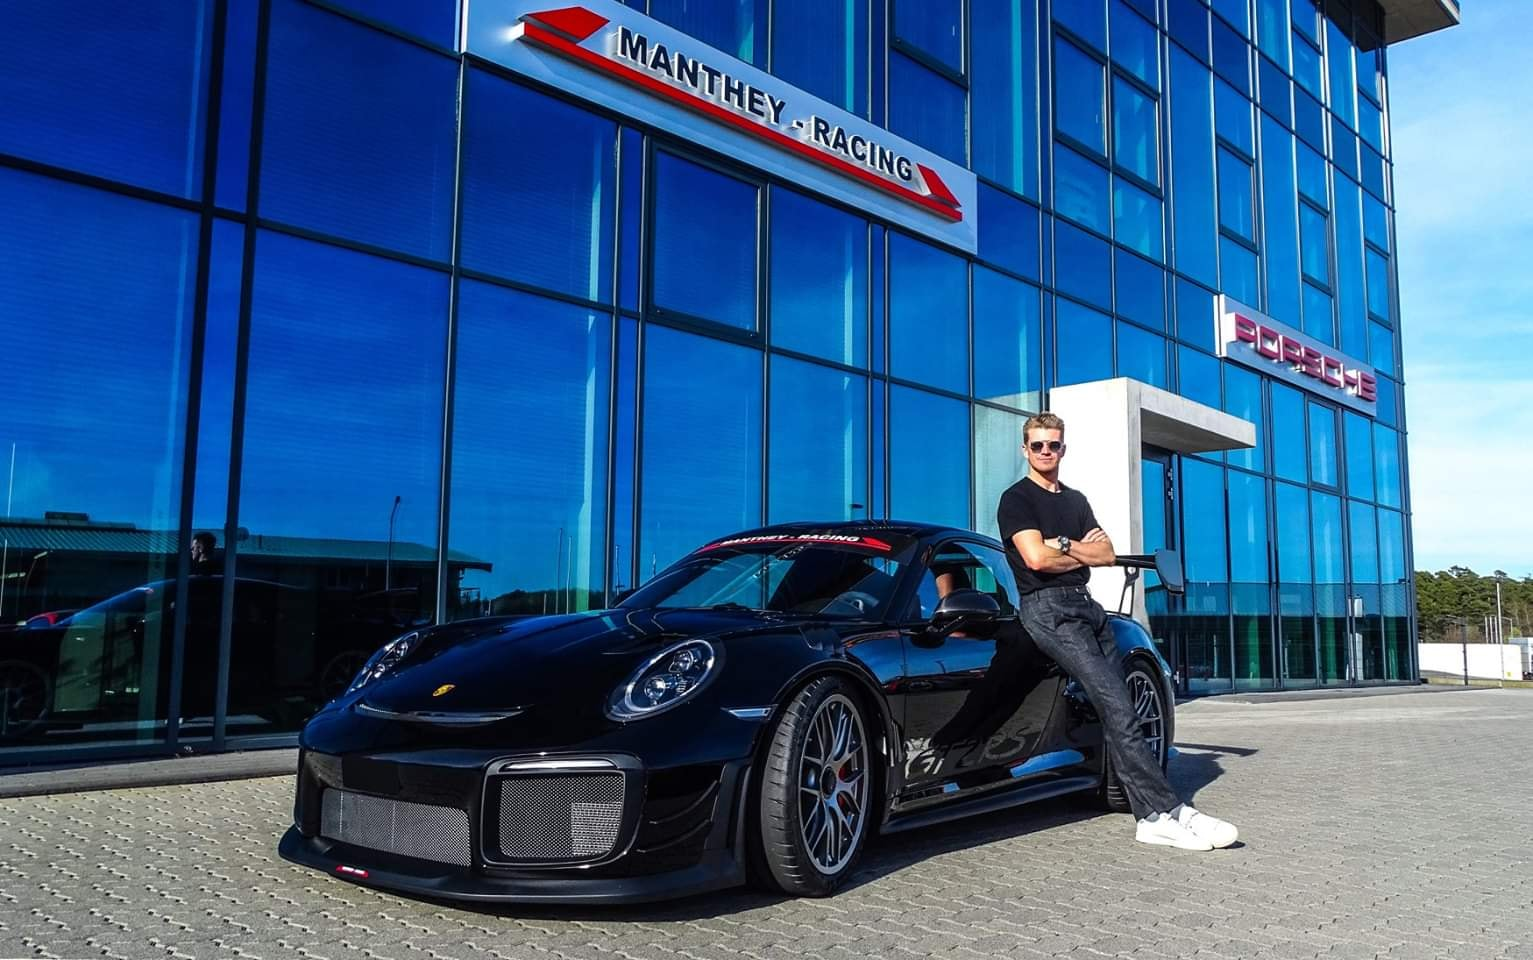 Why Does F1 Ace And Le Mans Champ Nico Hulkenberg Drive a Porsche GT2 RS MR?